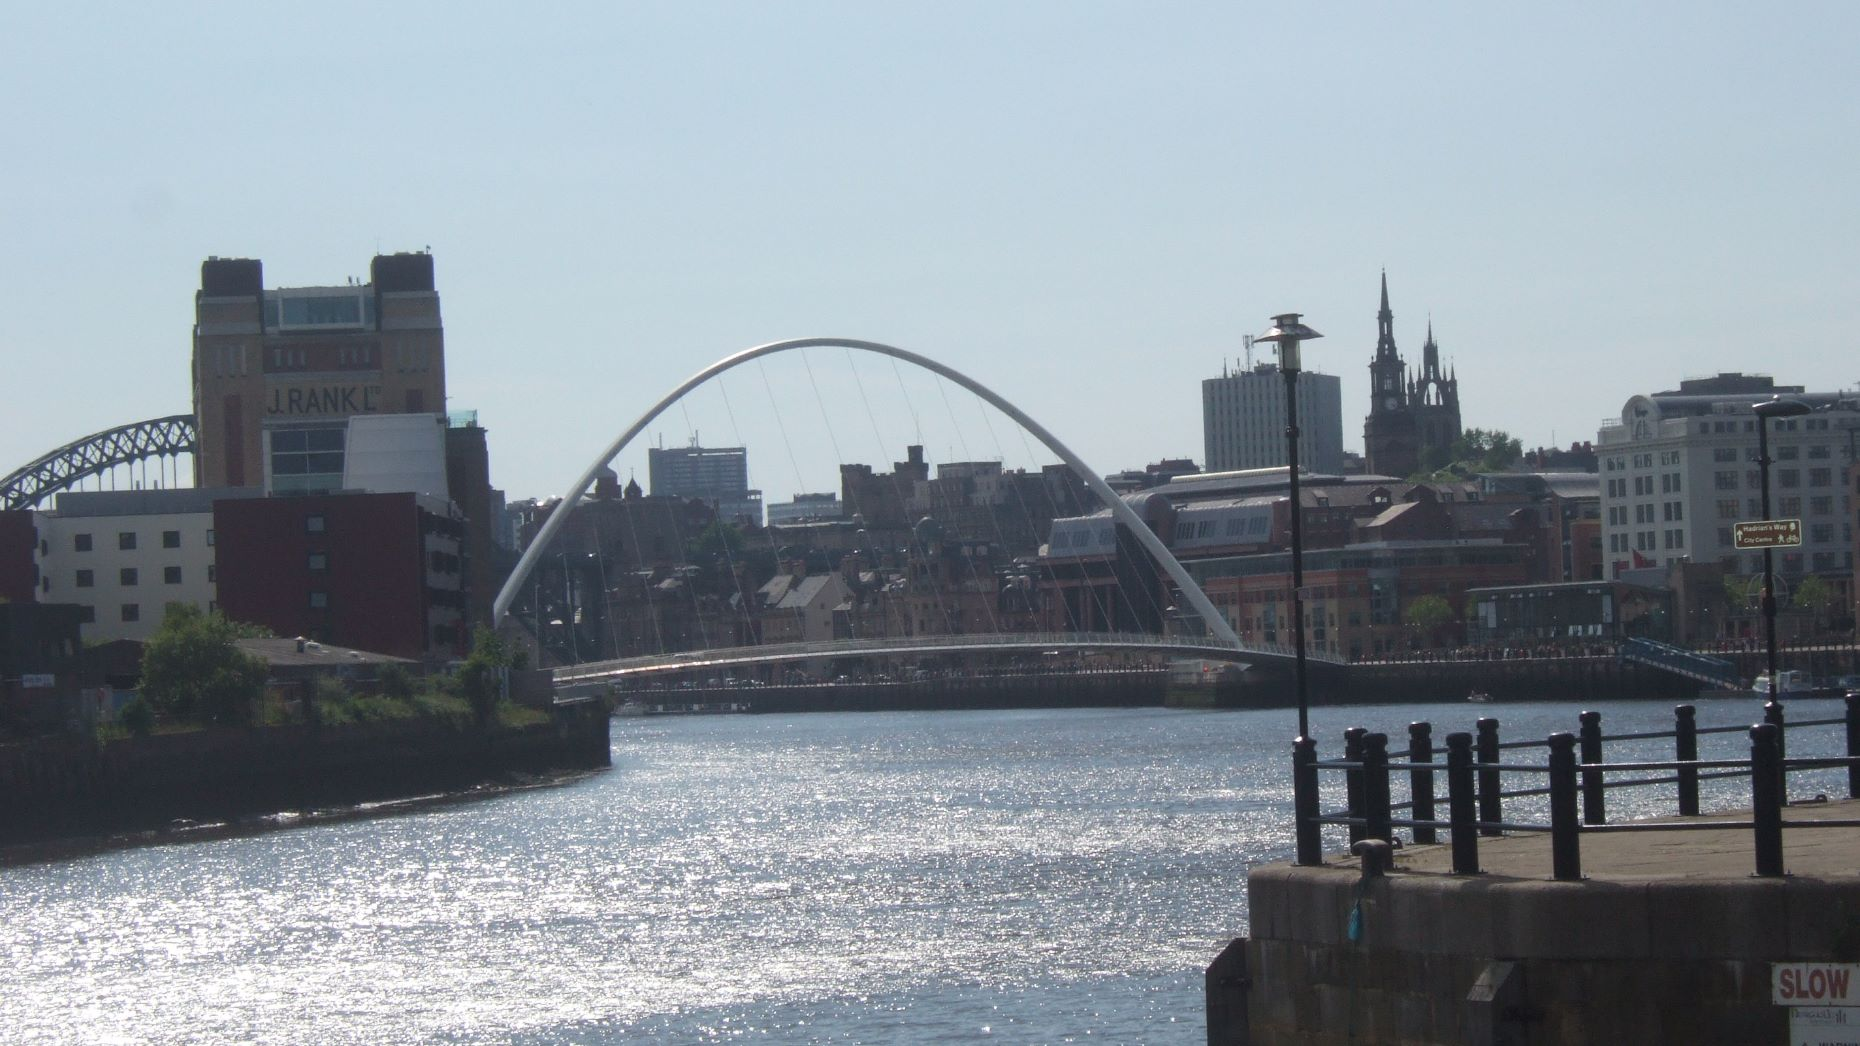 Newcastle Quayside from the Tyne